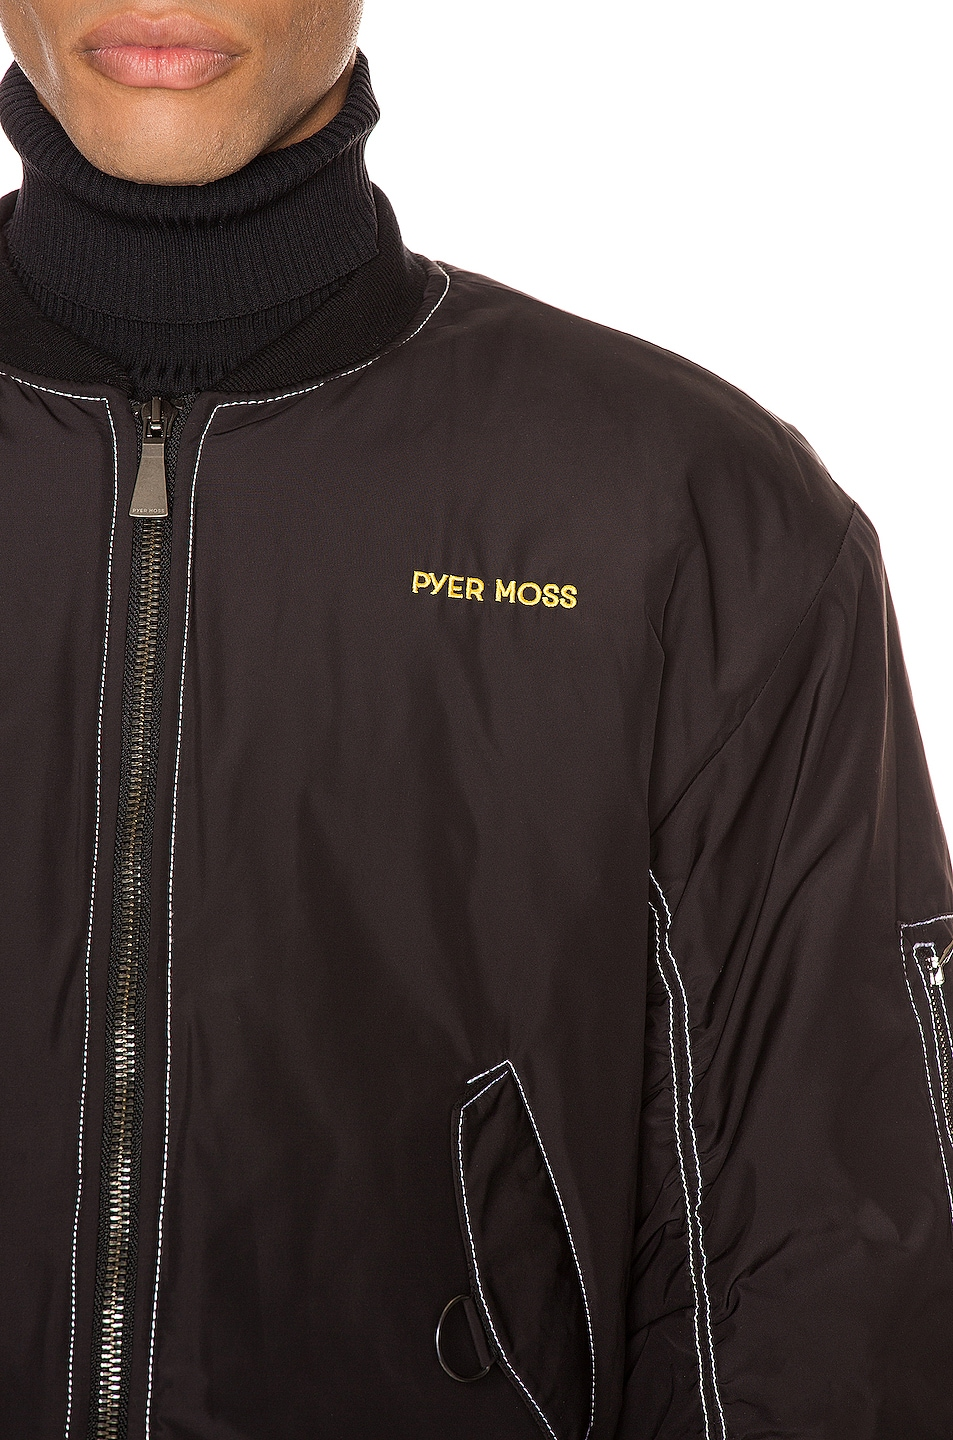 Image 7 of Pyer Moss Logo Embroidered Nylon Bomber Jacket in Black